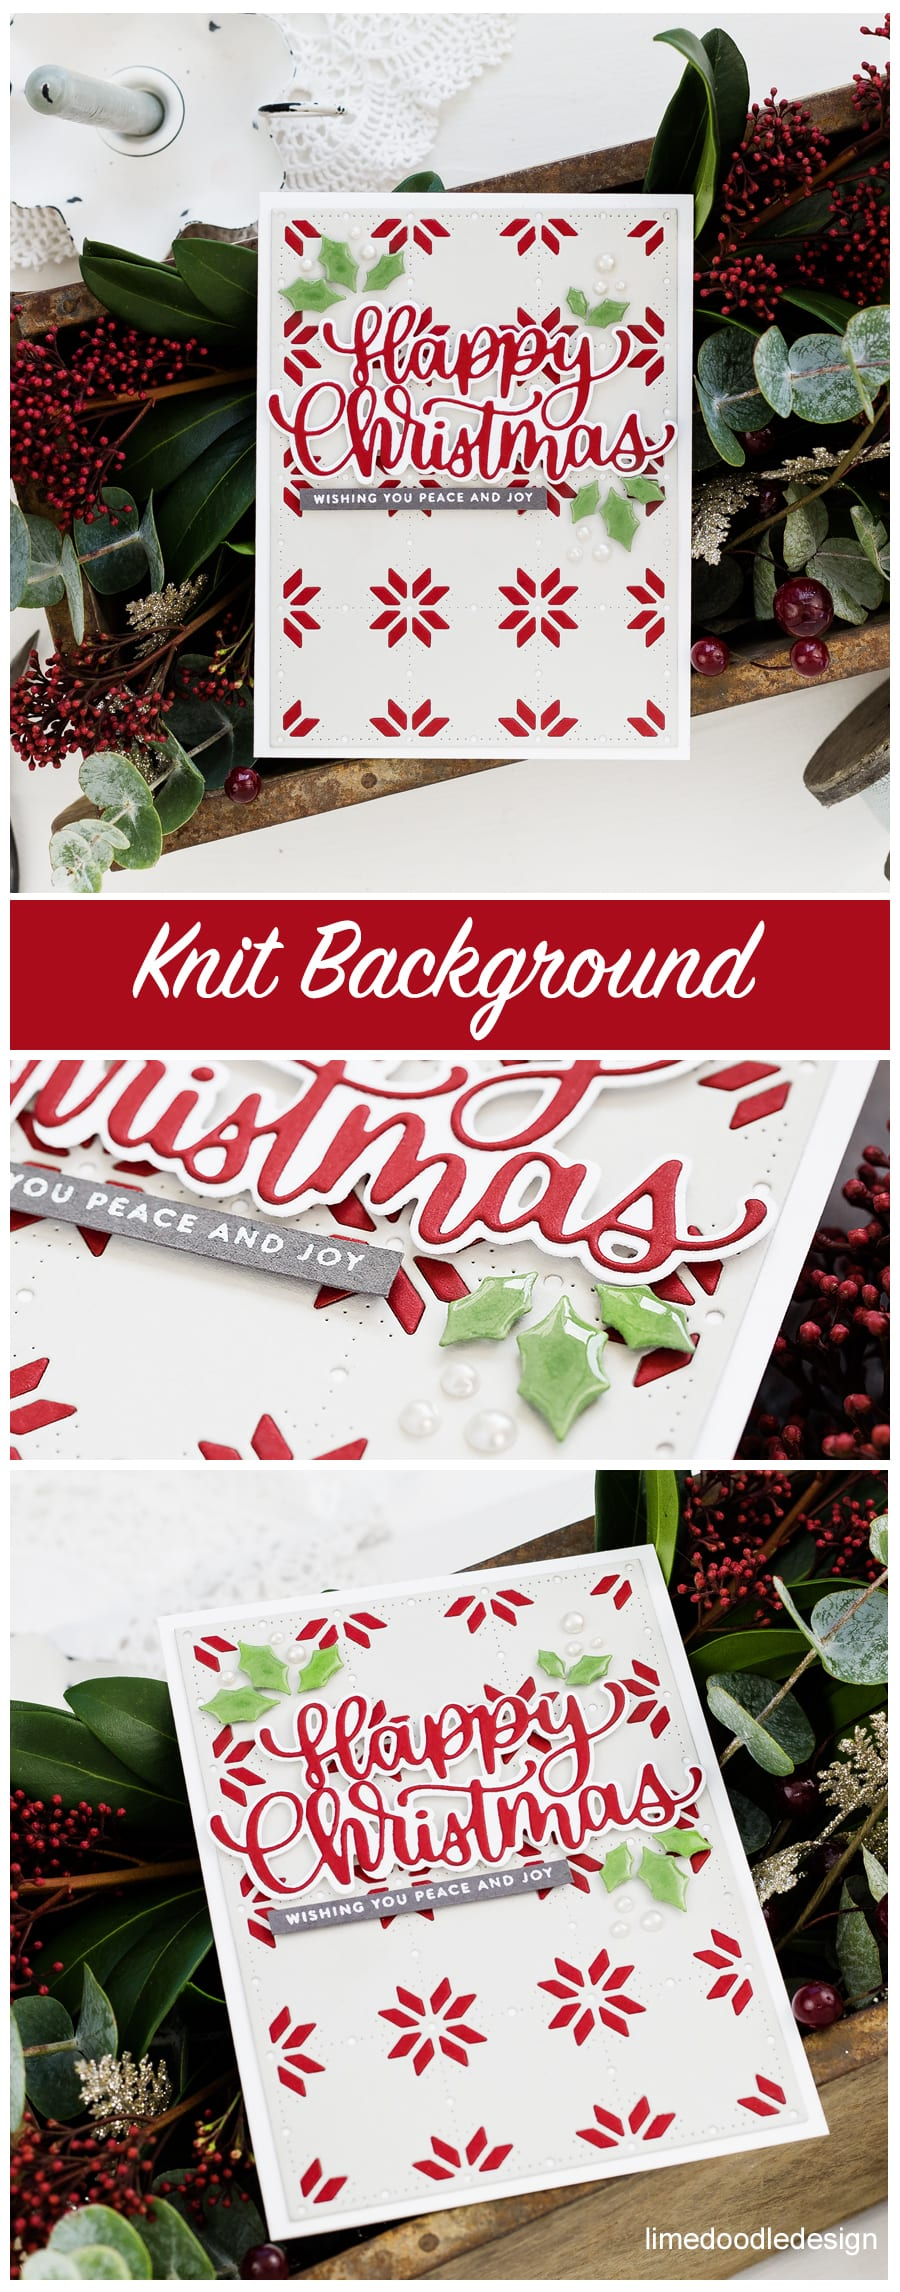 Die cut Christmas card with Holiday knit background details. Handmade card by Debby Hughes. Find out more here: https://limedoodledesign.com/2018/12/video-holiday-knit-background-simon-says-stamp-diecember/